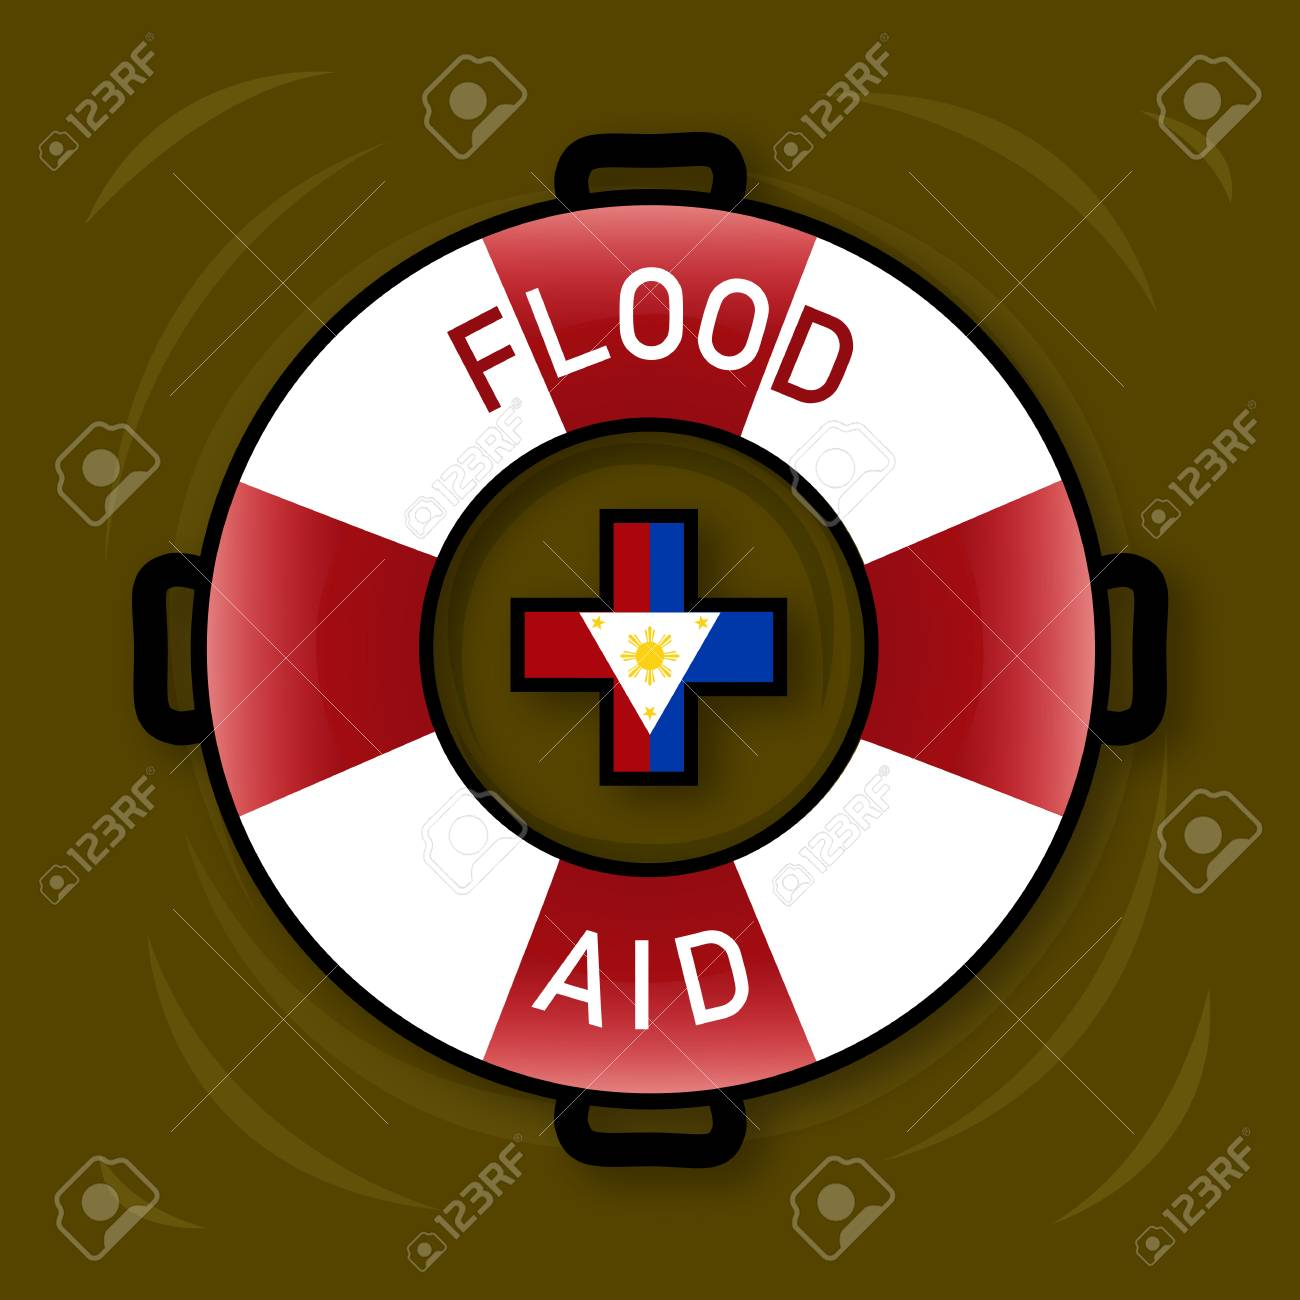 Illustration of Flood Aid Symbol for flooding in Philippine Islands. Stock Illustration - 92352140